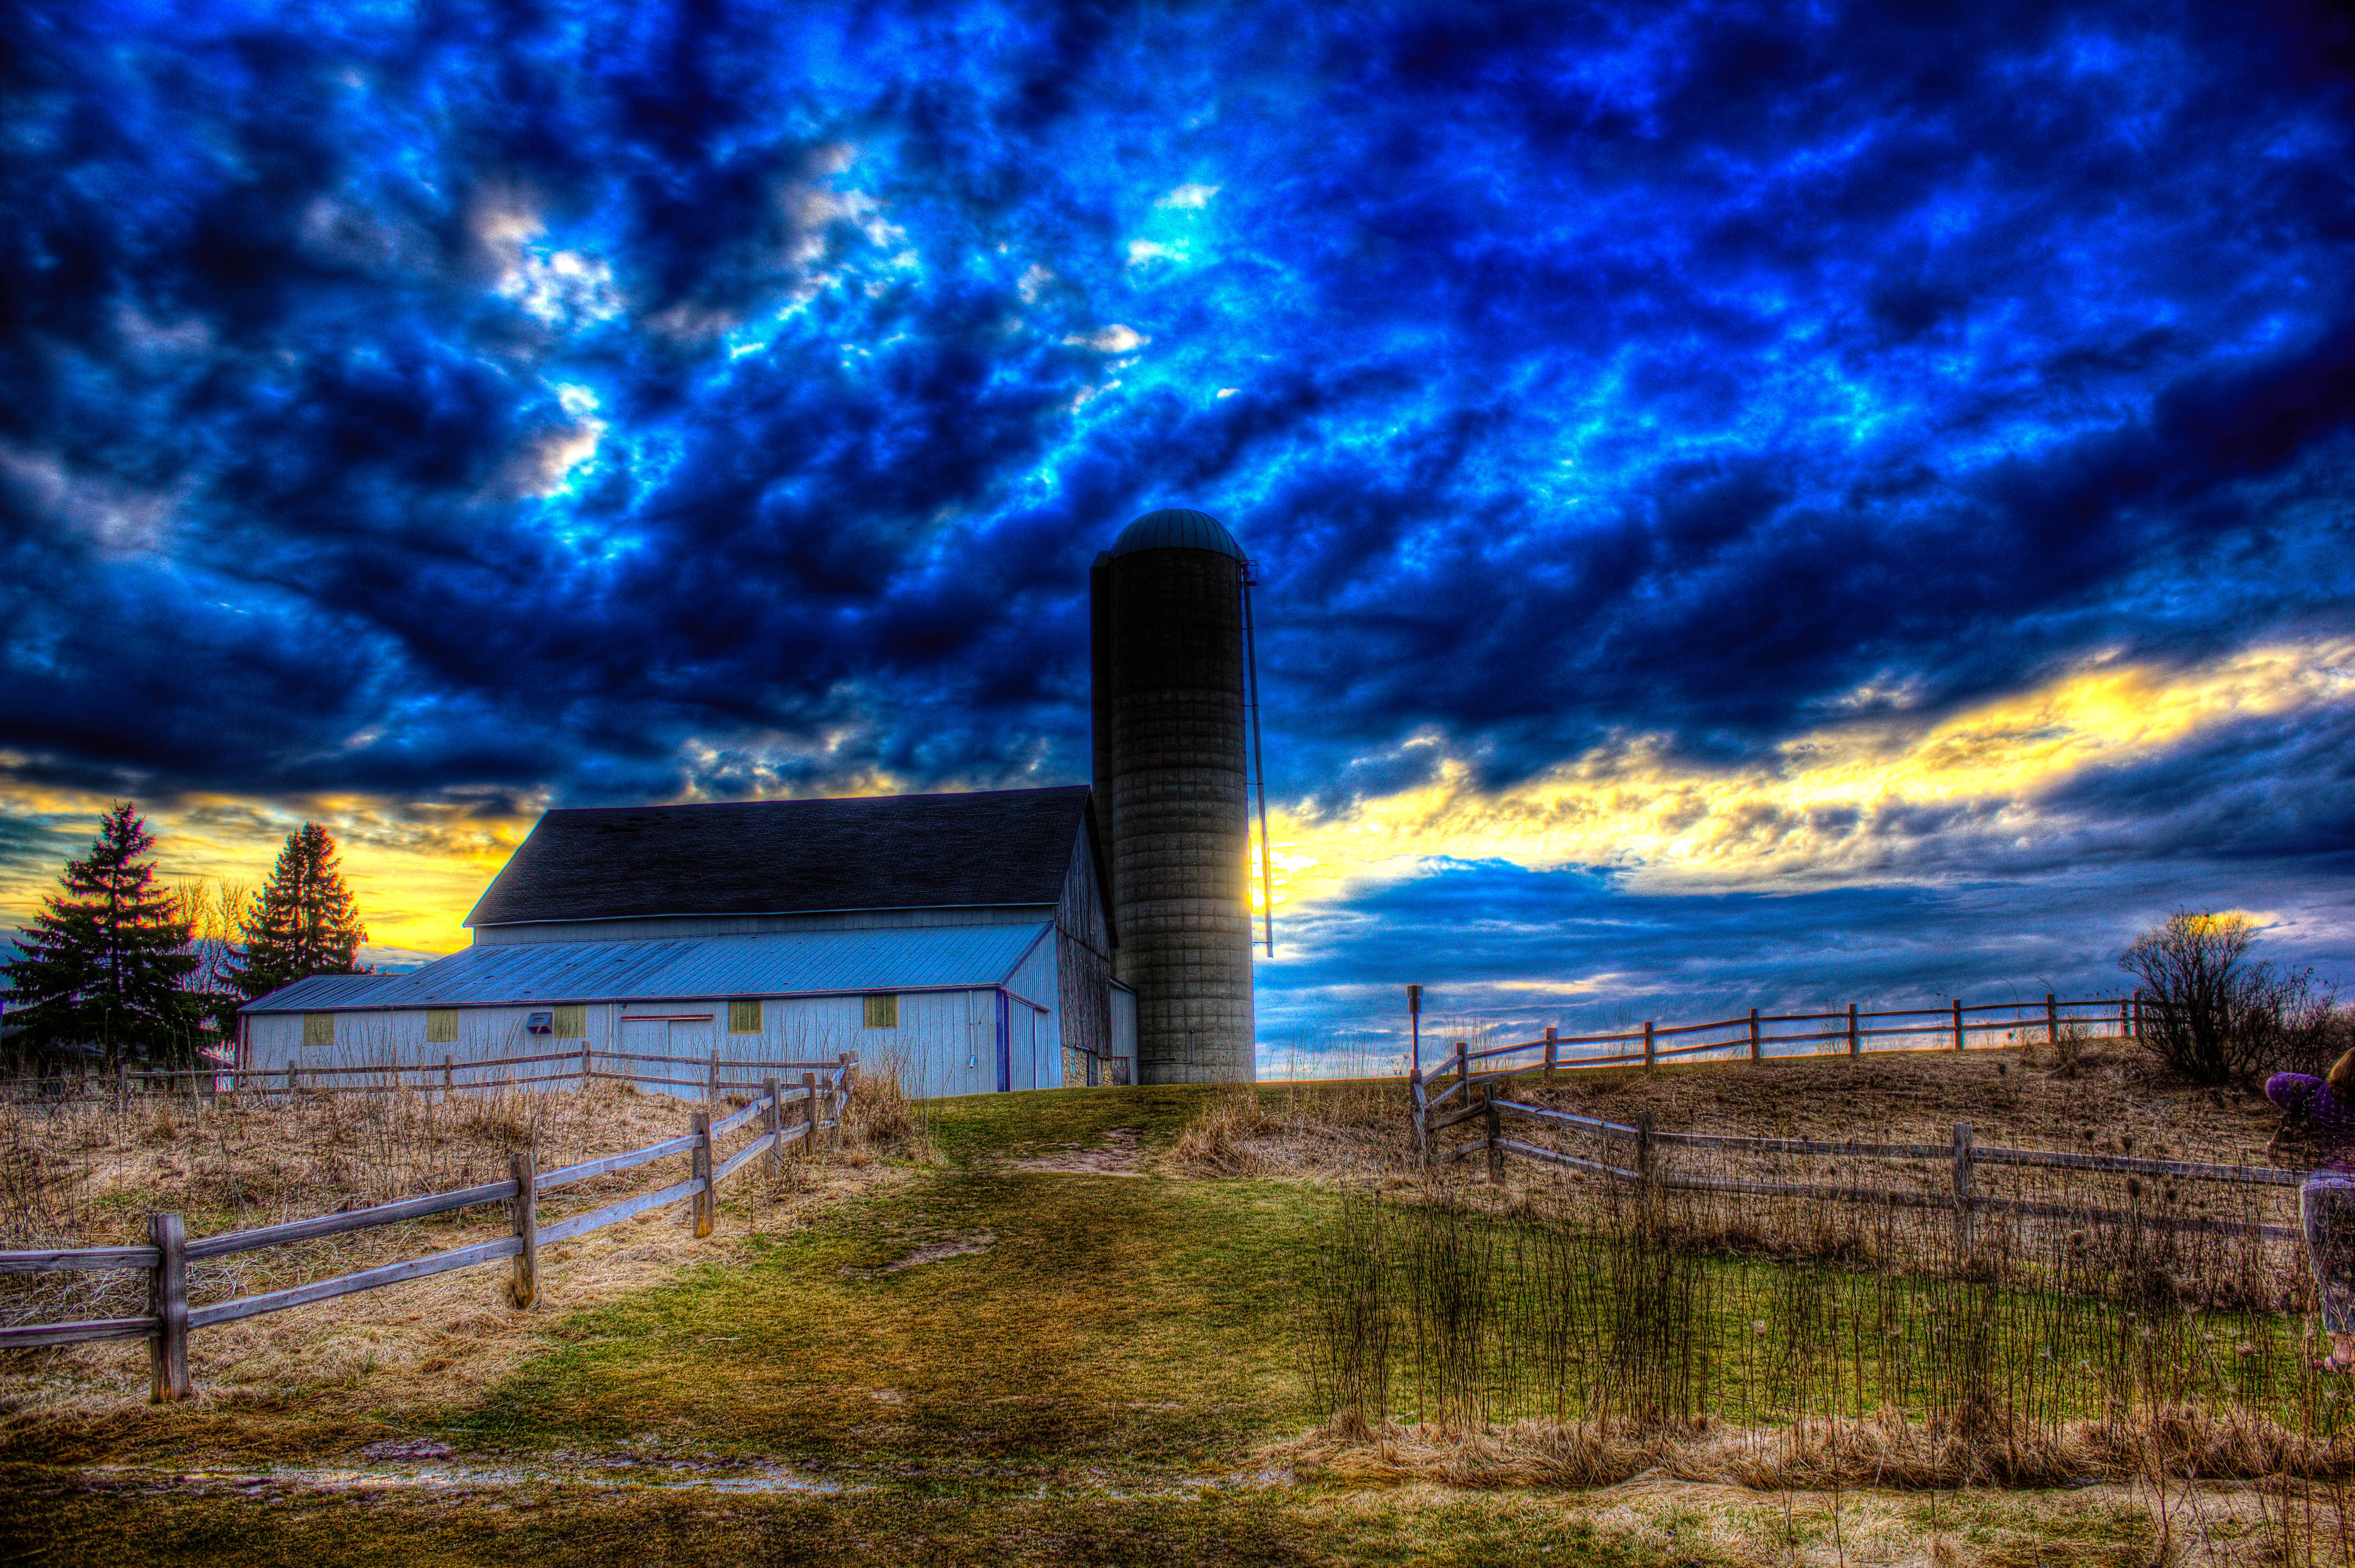 Splendid Skies And Landscapes With Barn And Silo At